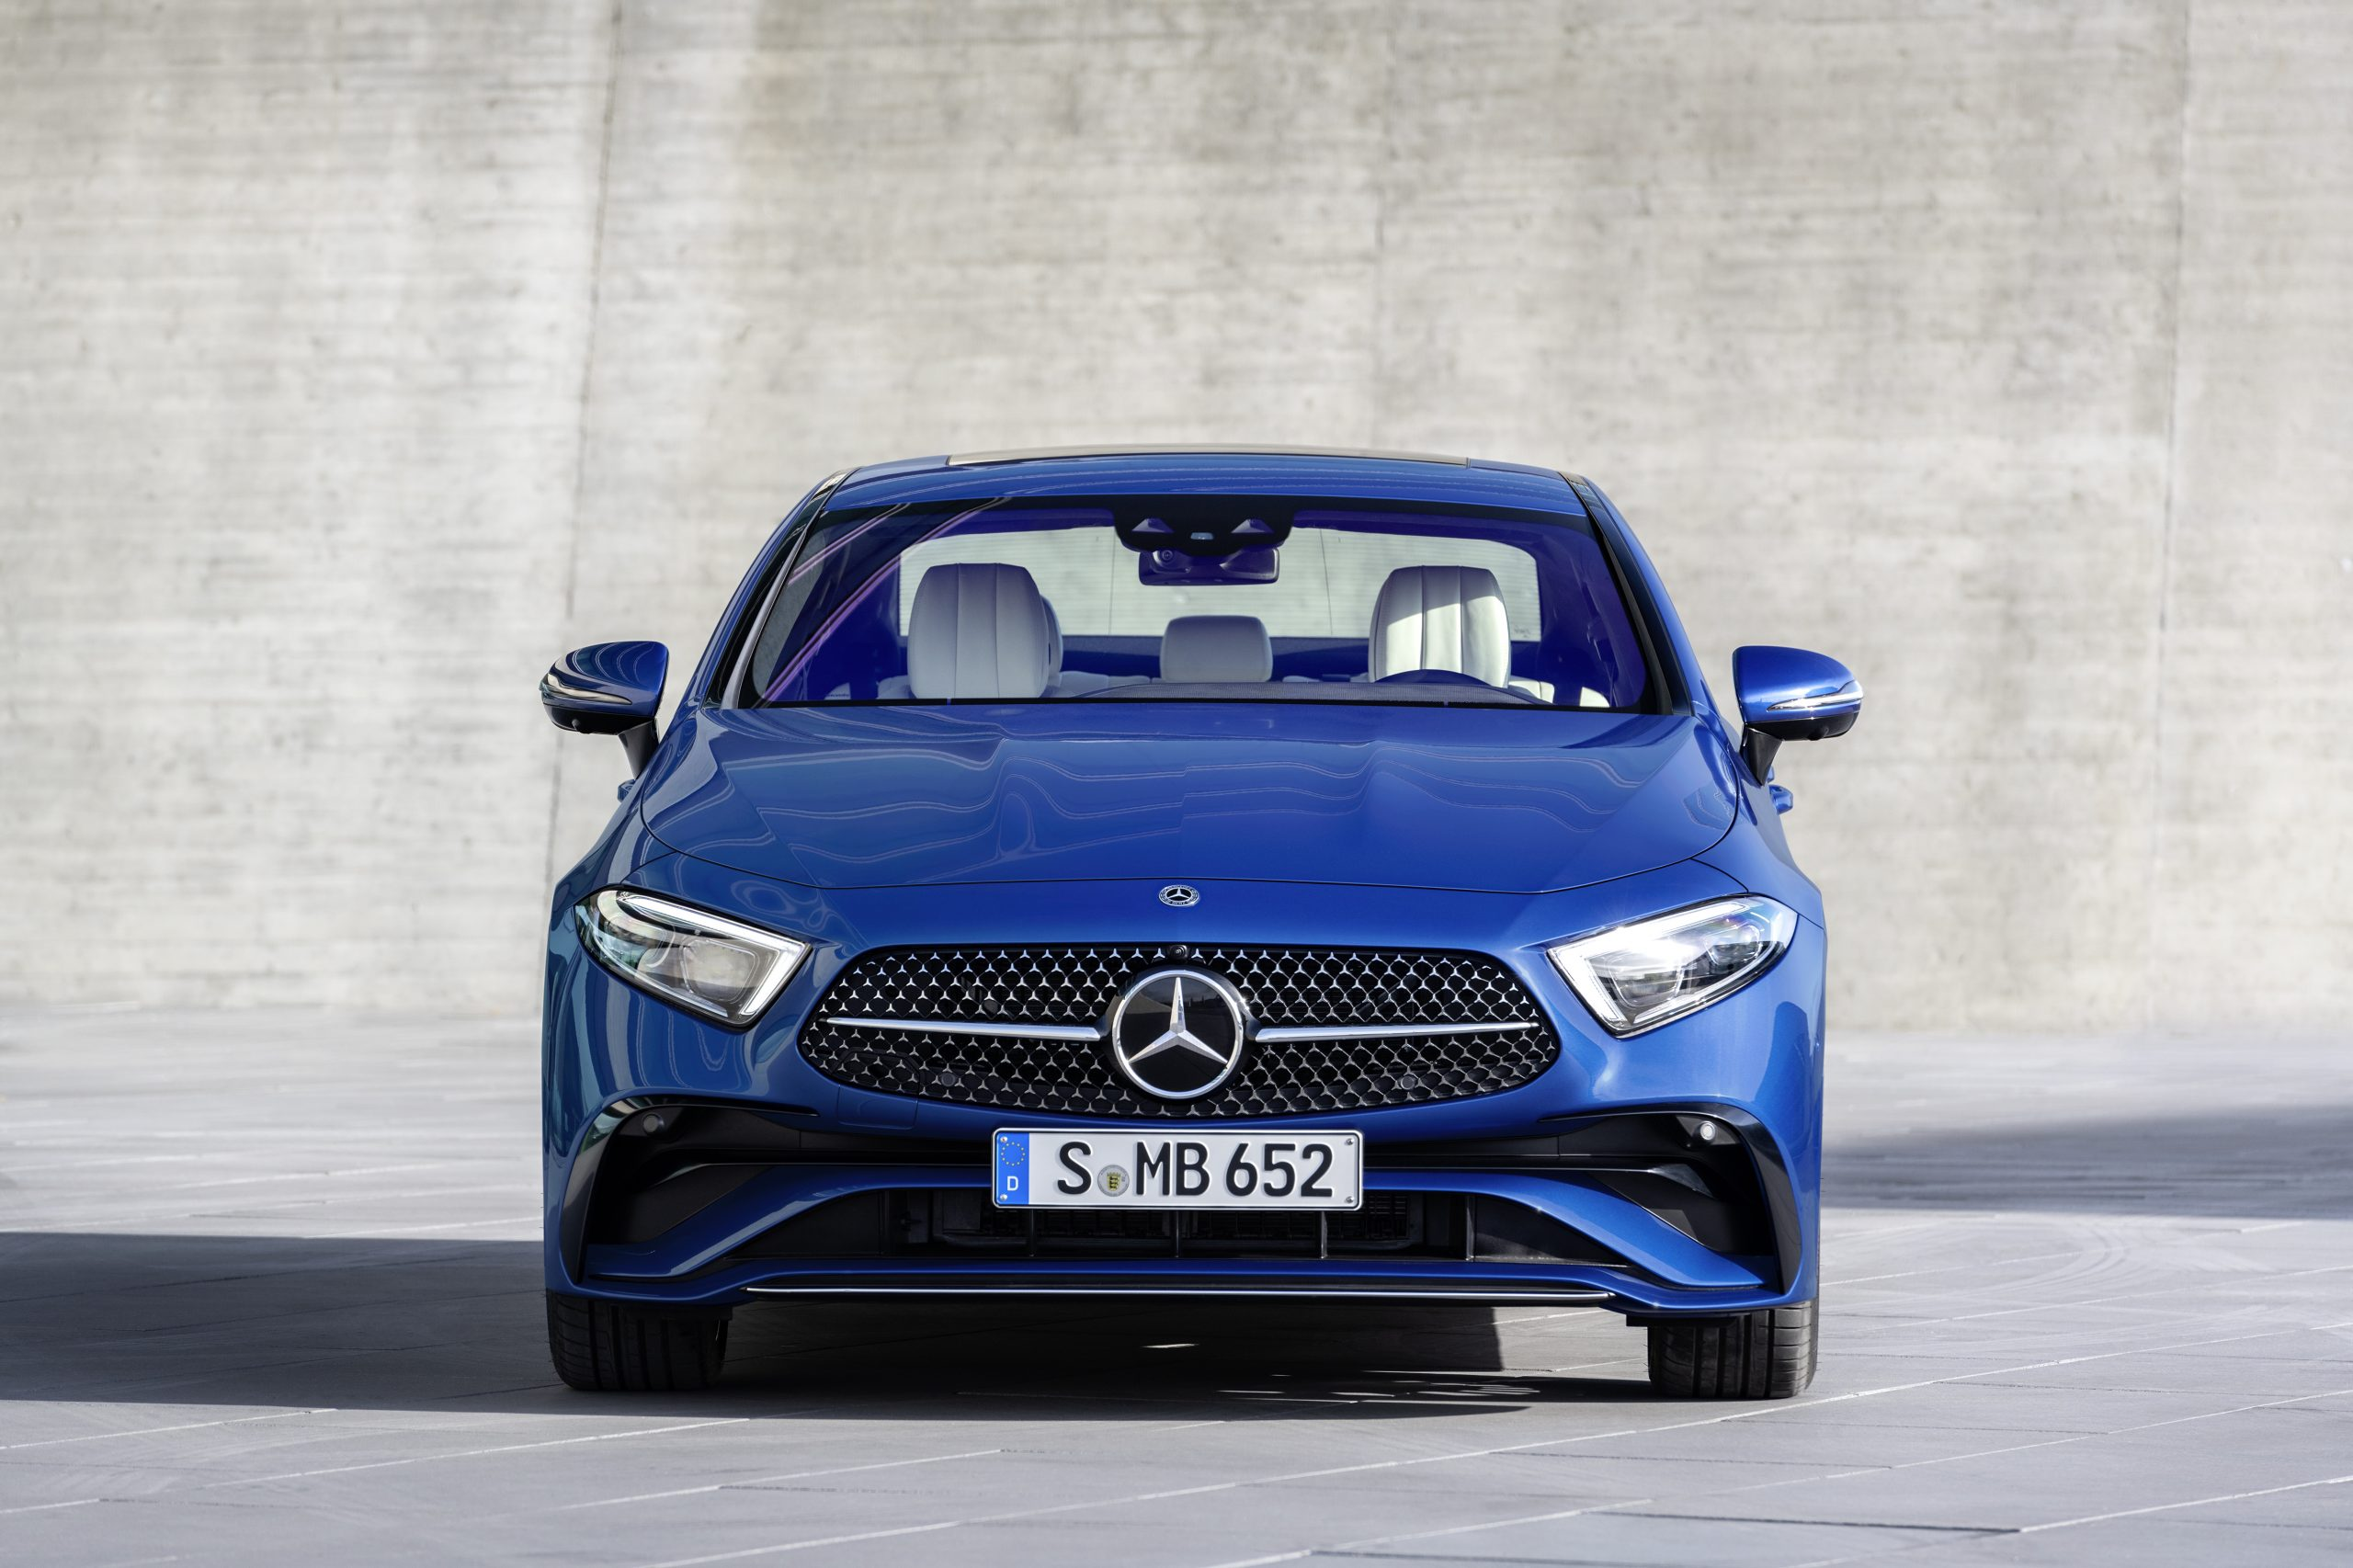 2021 Mercedes-Benz CLS 450 4Matic Coupé front grille